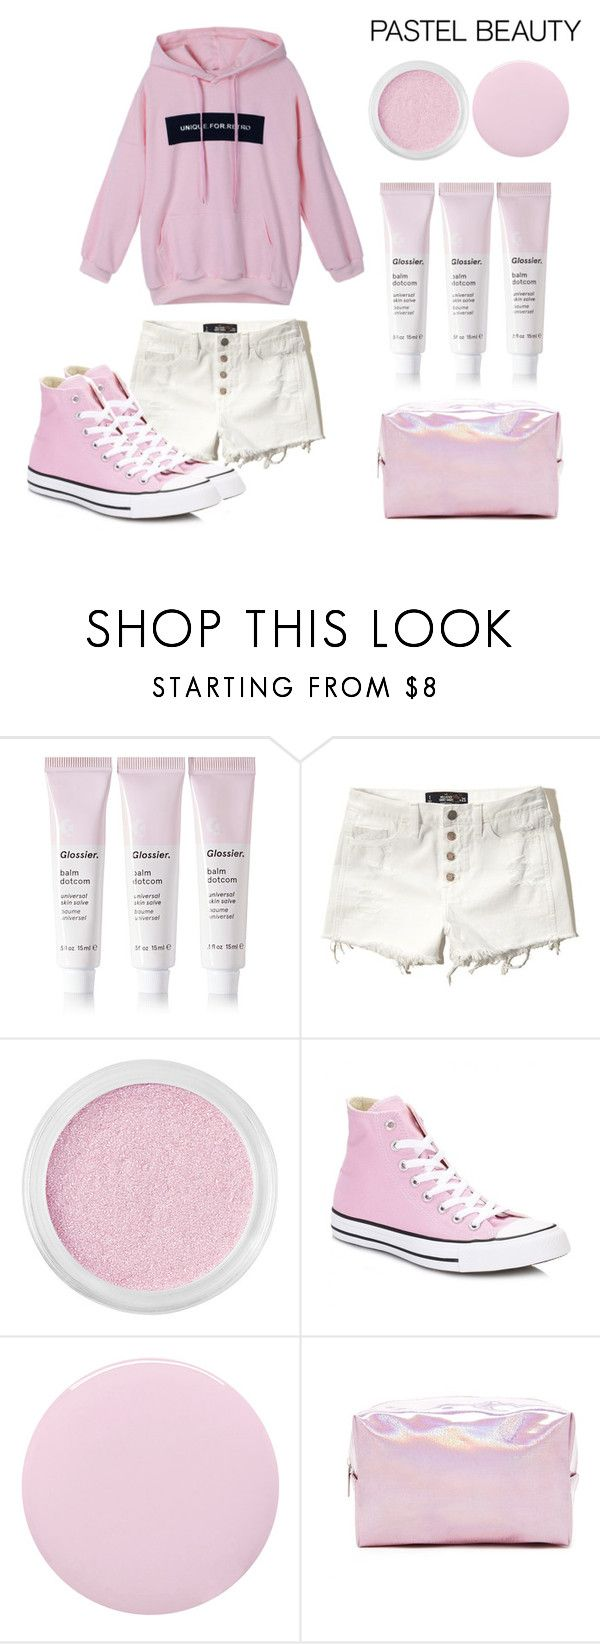 """Pretty Pastel Makeup"" by hideous ❤ liked on Polyvore featuring beauty, Glossier, Hollister Co., Bare Escentuals, Converse, Deborah Lippmann, Forever 21, contest, Pink and prettypastelmakeup"